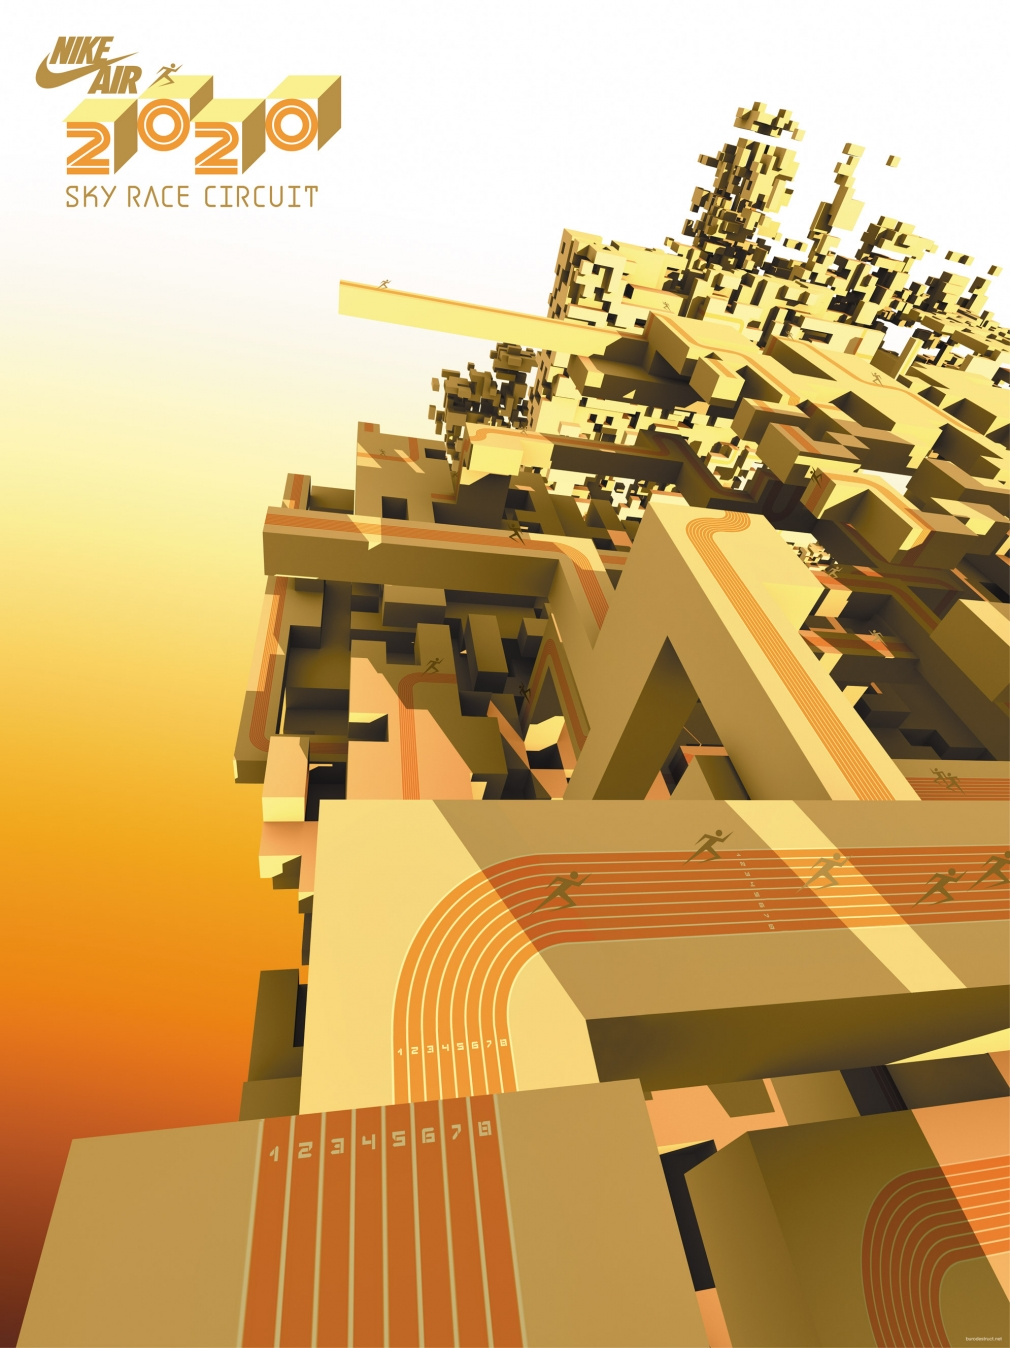 Nike Air 2020 Sky Race Circuit poster